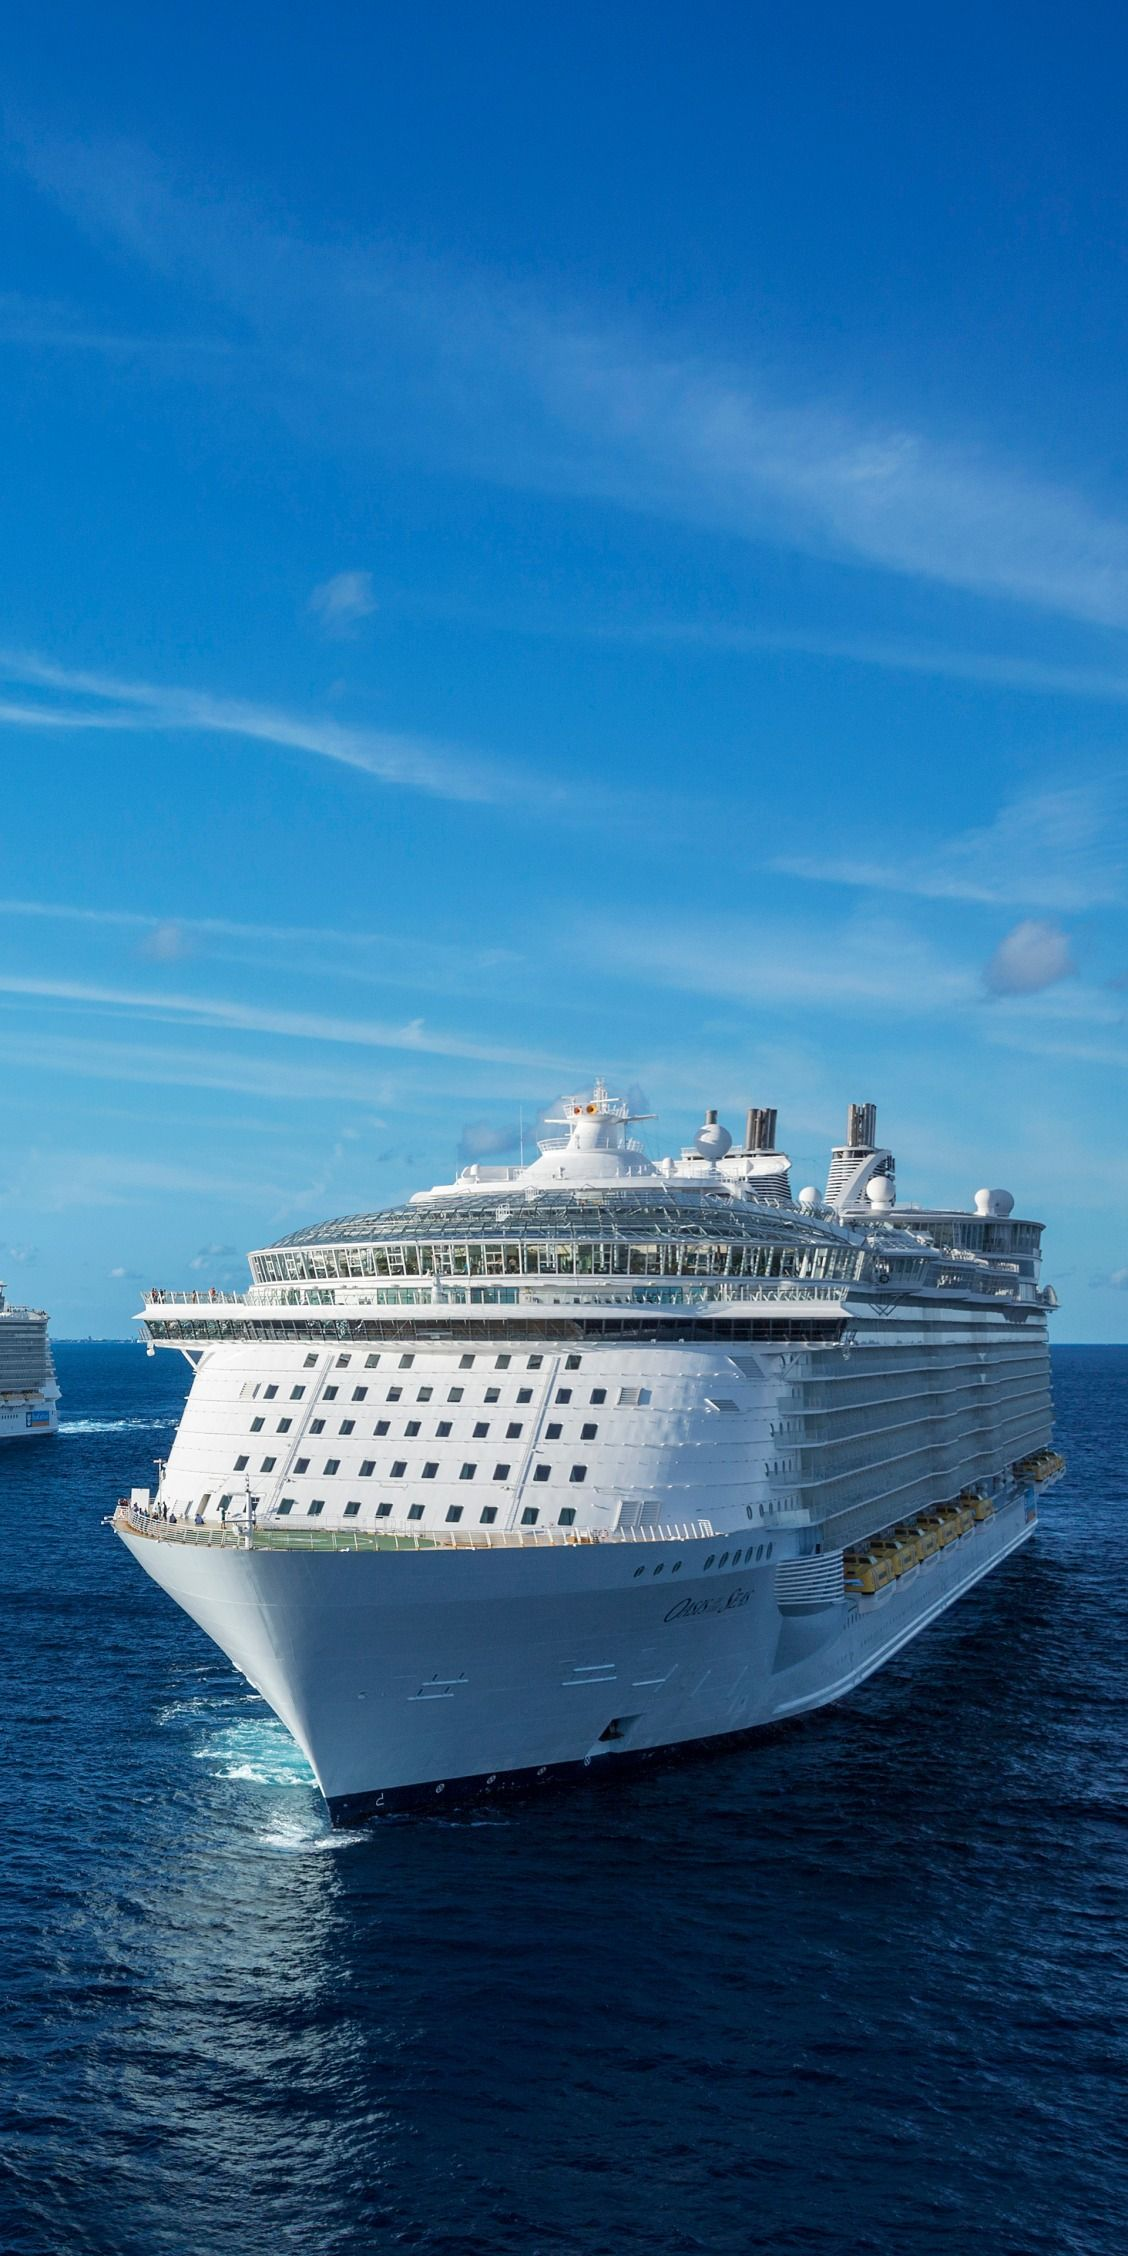 Oasis Of The Seas The World S Best Family Cruise Ship Looks Just Like This Cruise With Royal Cari Royal Caribbean Cruise Lines Cruise Ship Best Cruise Ships